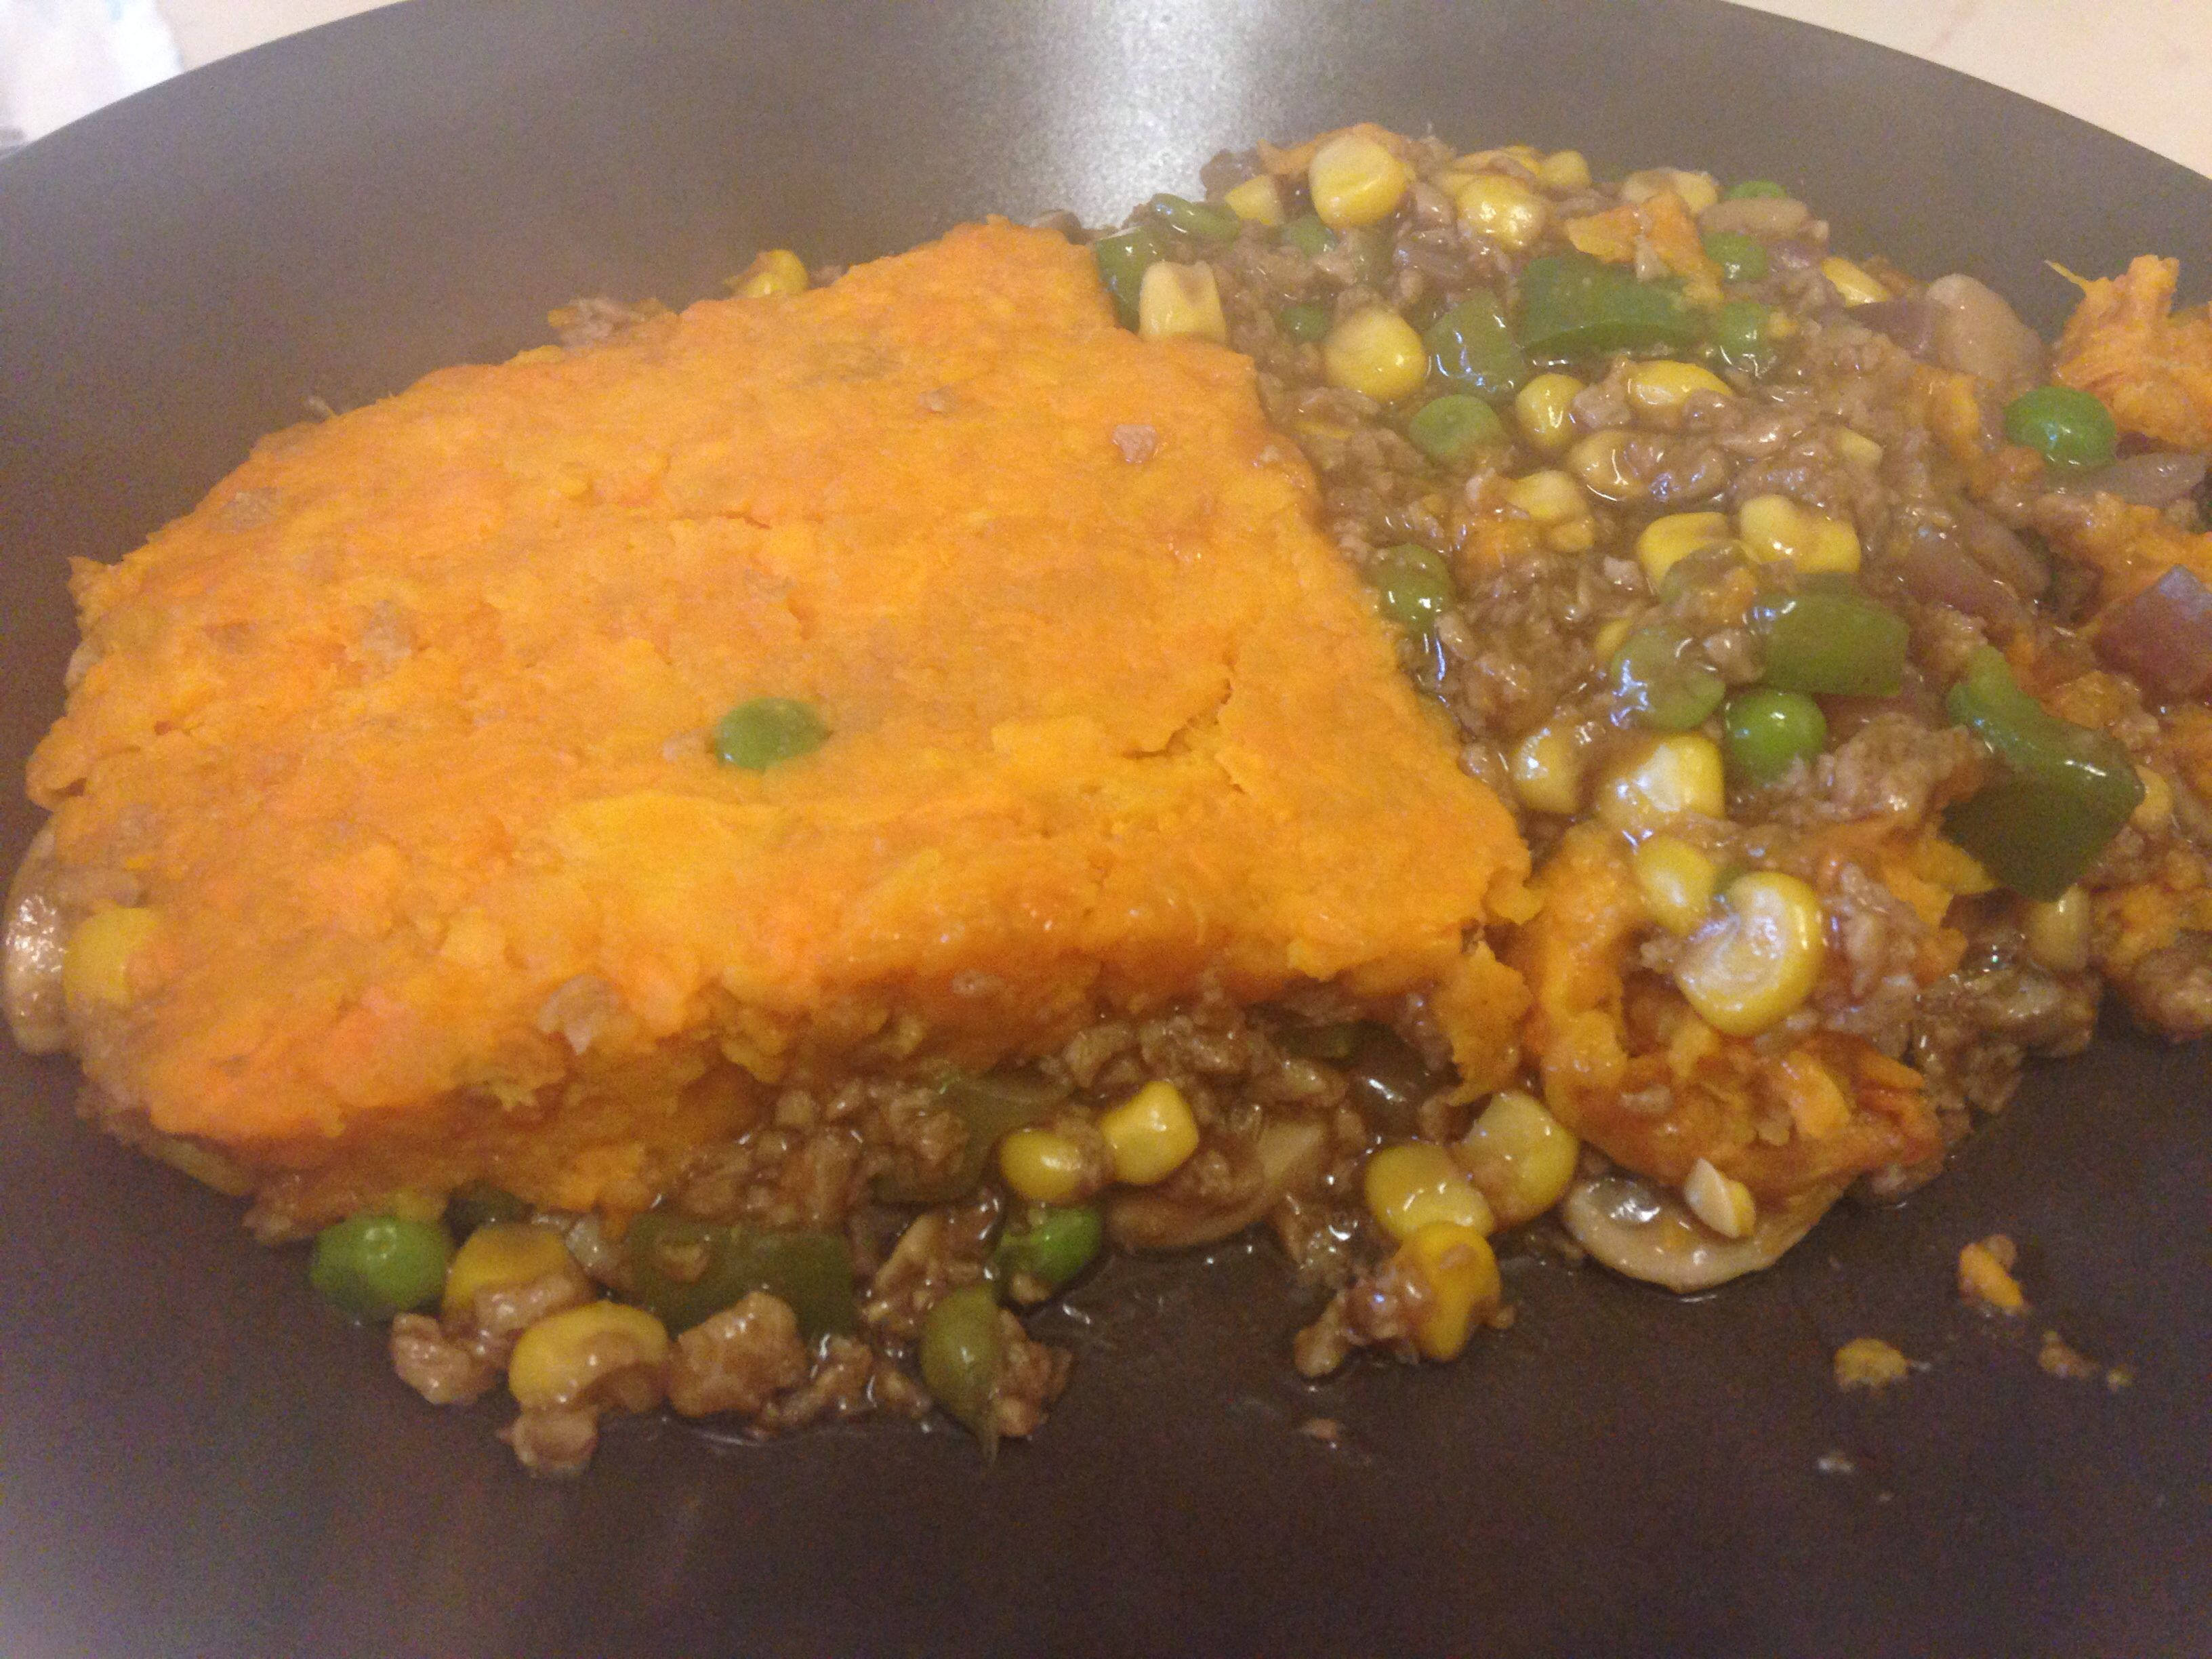 Home made vegan shepherds pie :) Sweet potato, soya mince, vegetables of choice and vegetable gravy #food #vegan